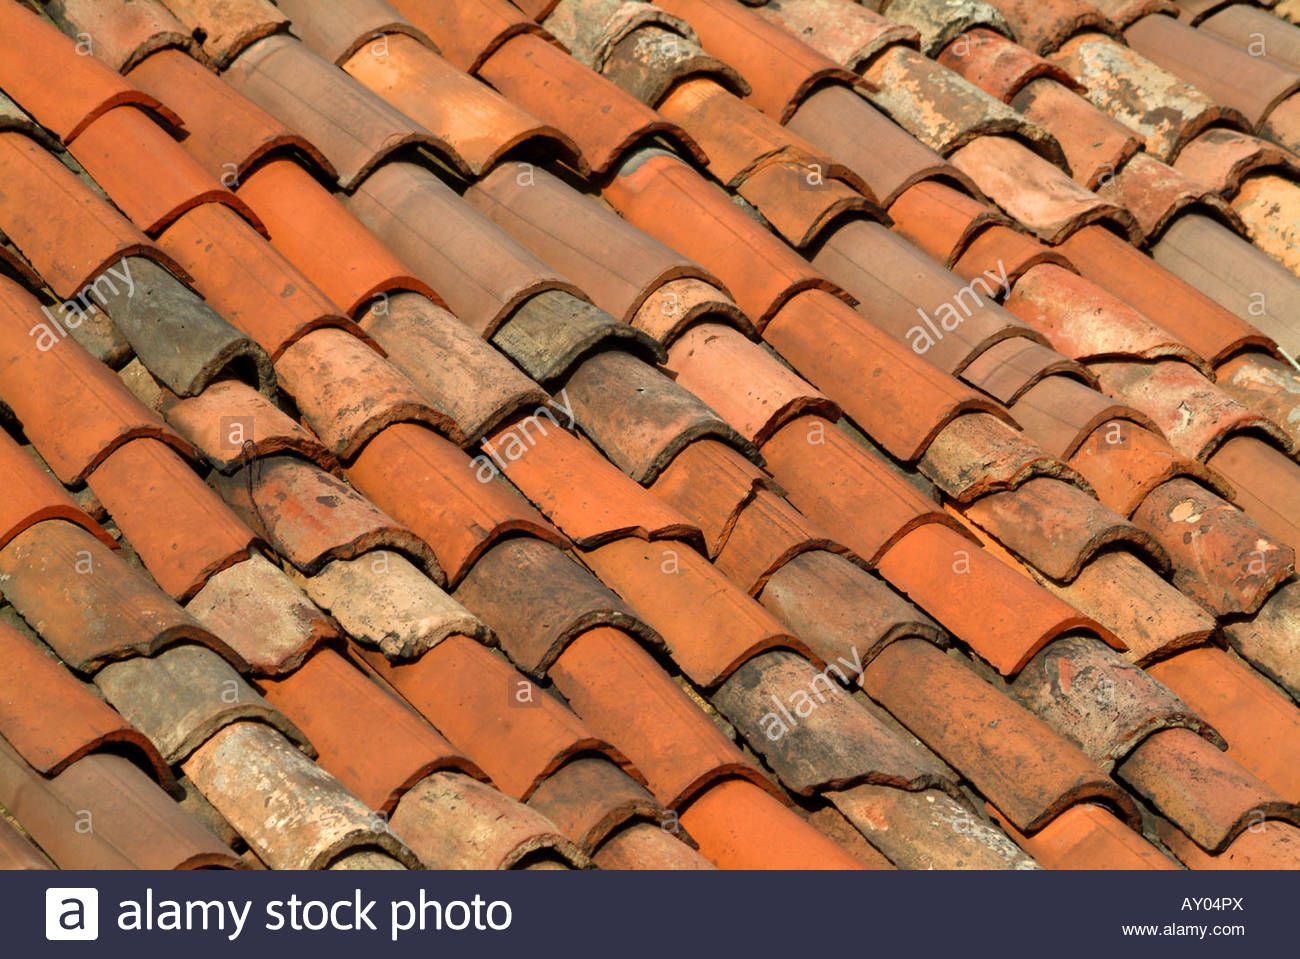 Pin By Elizabeth Mcgovern On Bel Sogno Garden Roof Tiles Italian Courtyard Roof